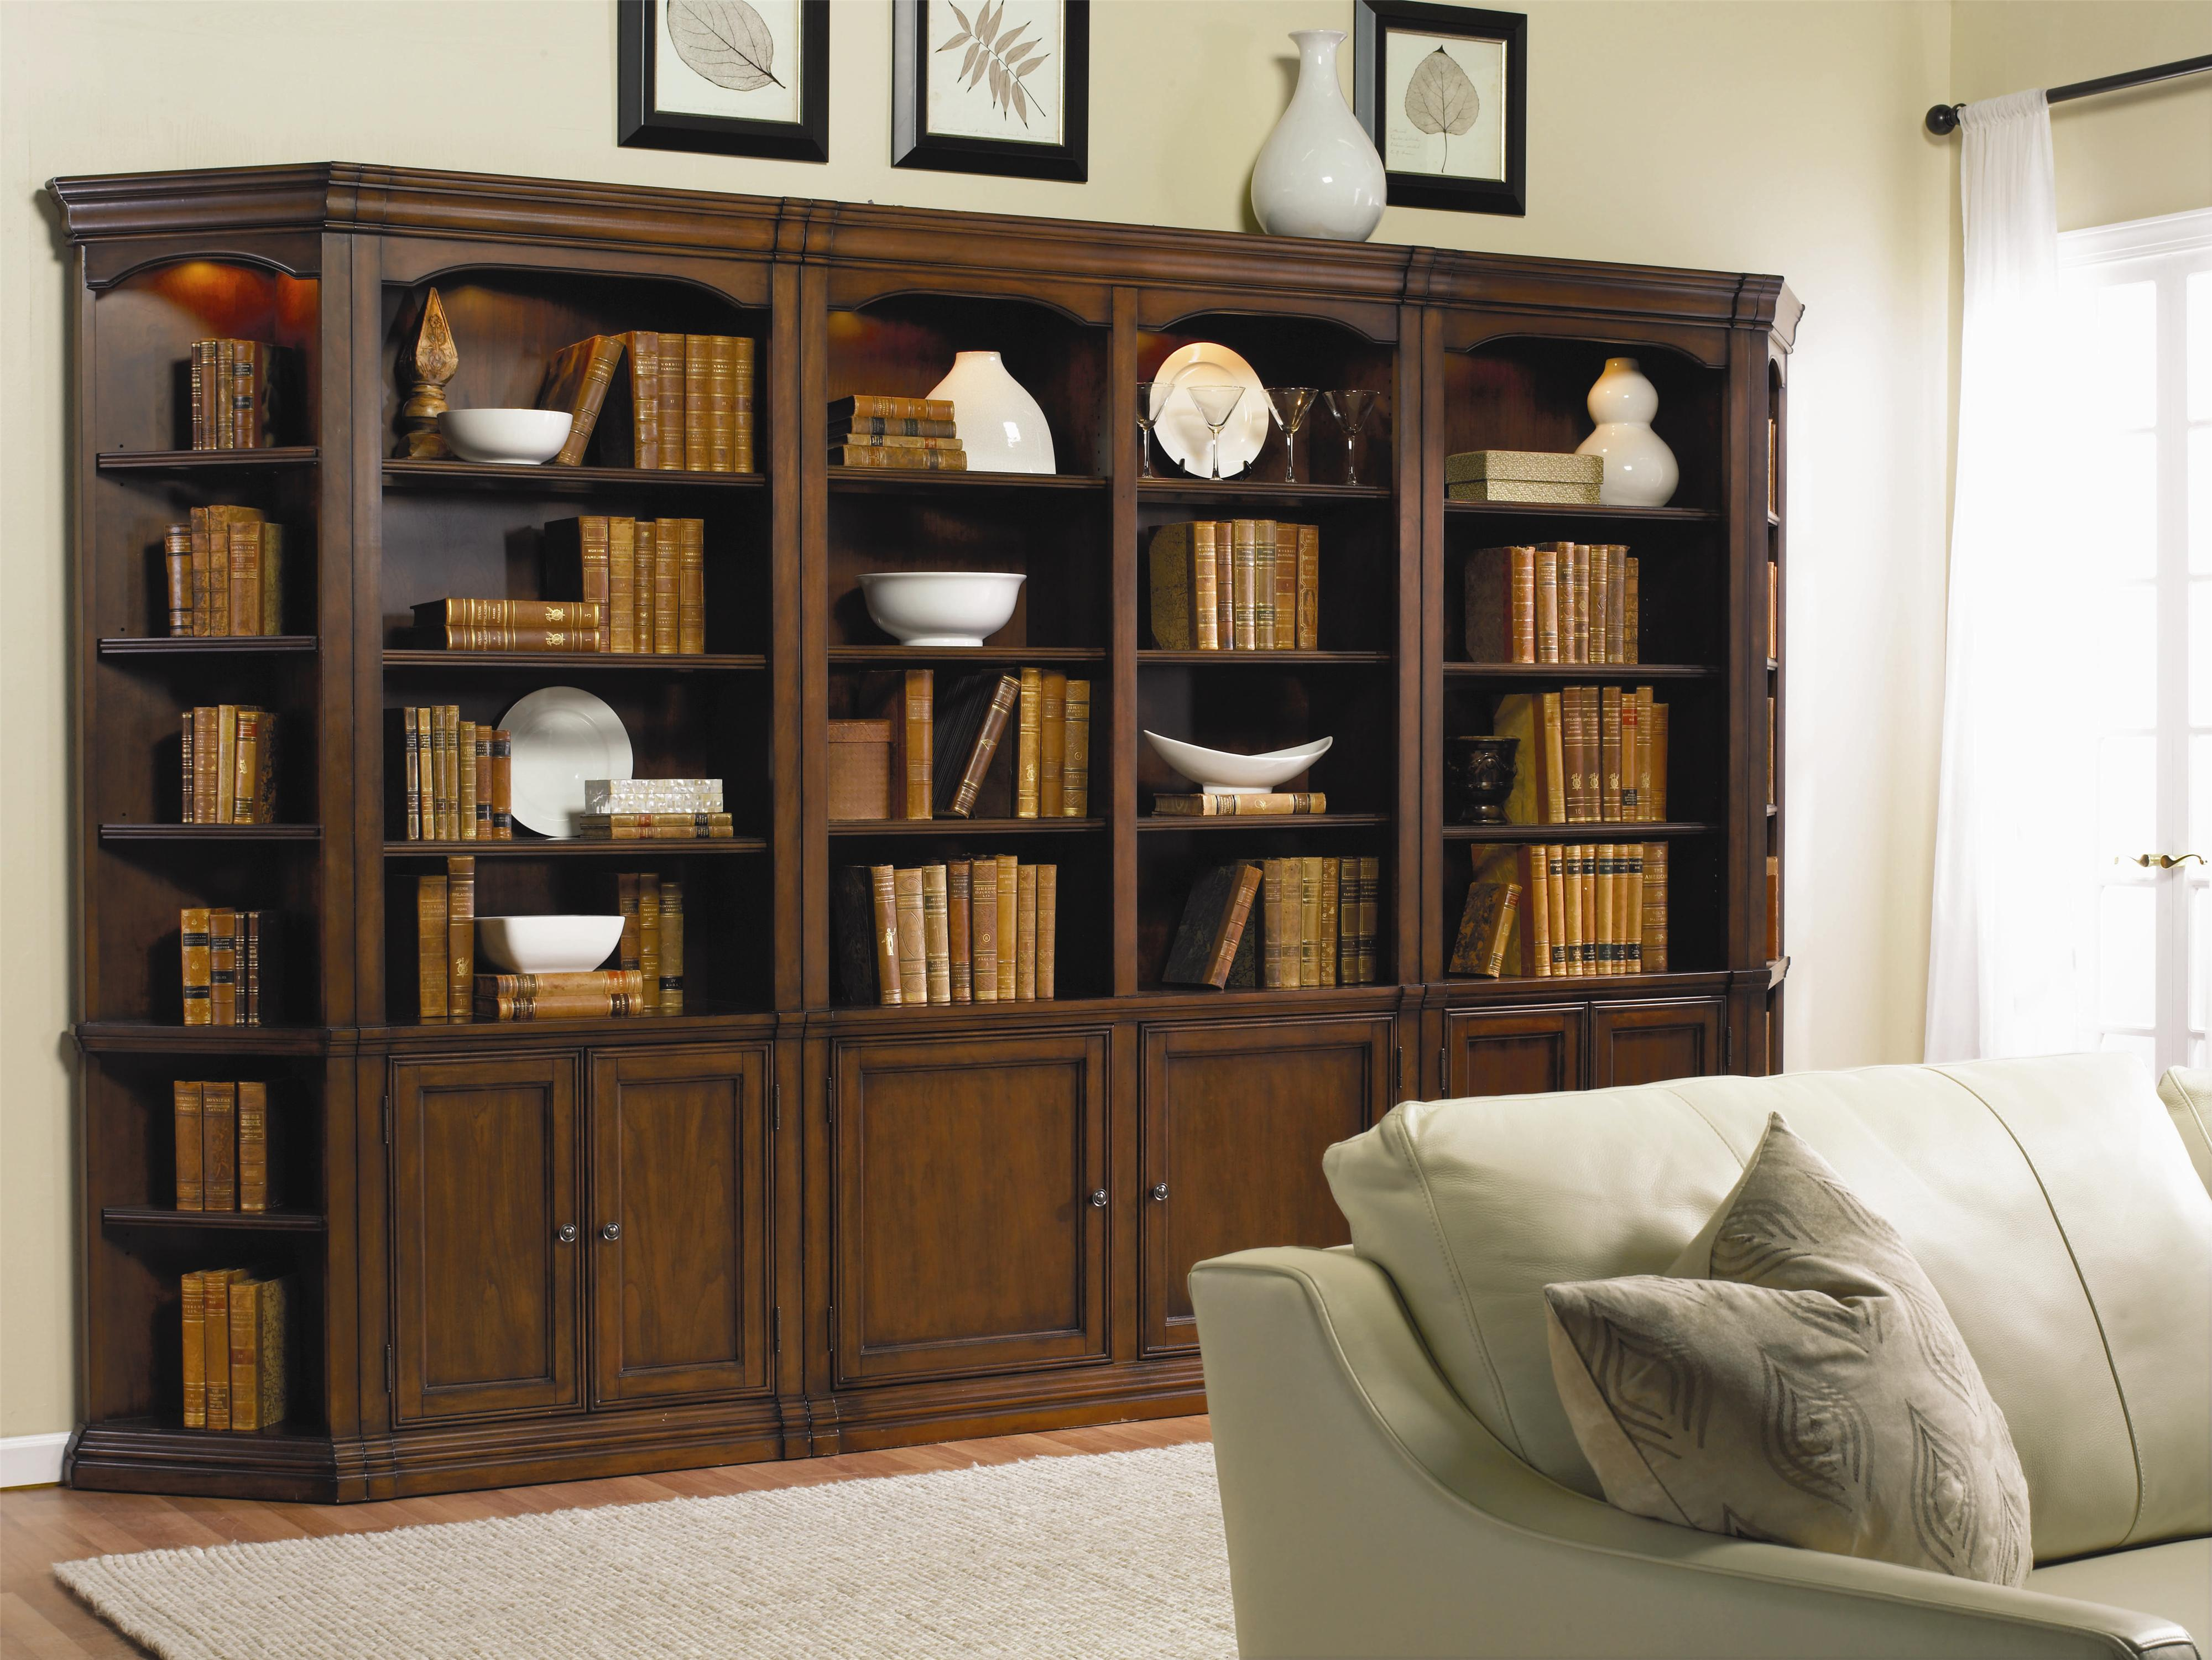 hooker furniture cherry creek modular wall system item number